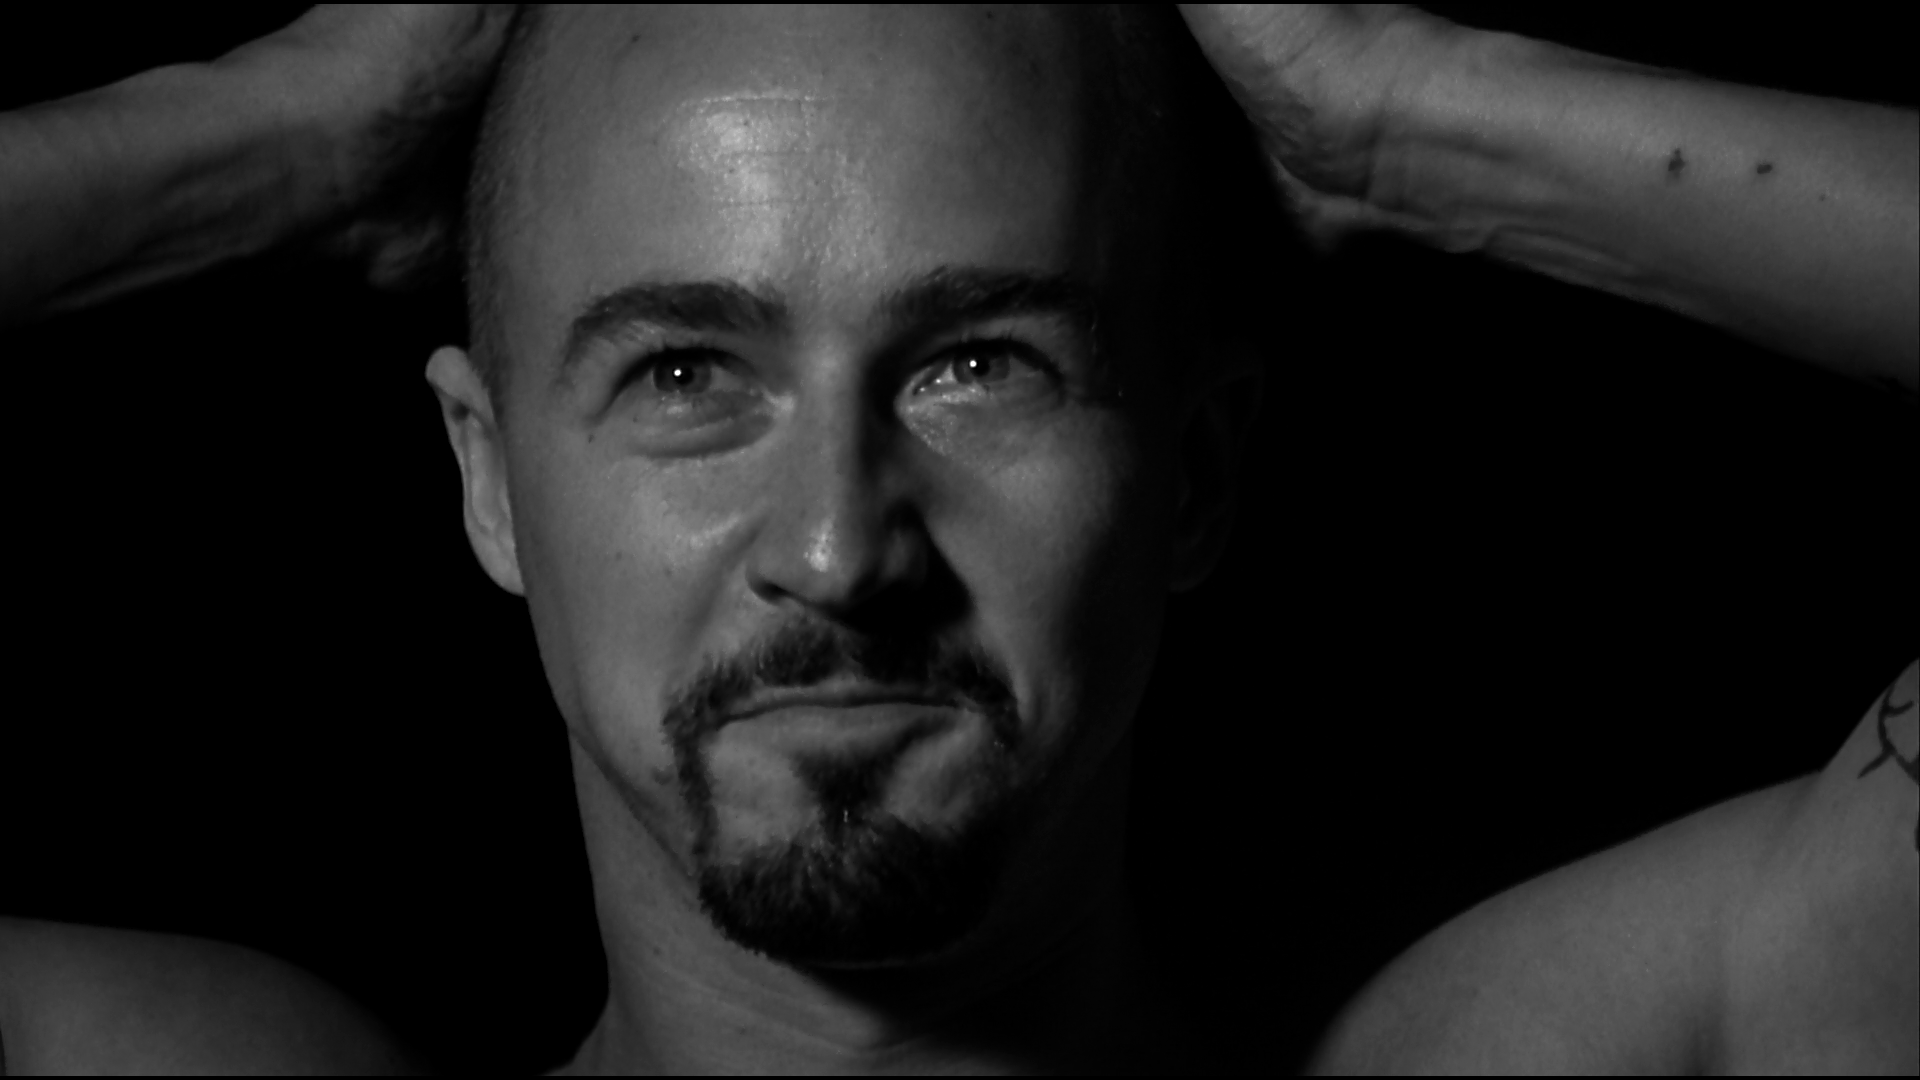 Edward Norton Wallpaper 14   1920 X 1080 stmednet 1920x1080